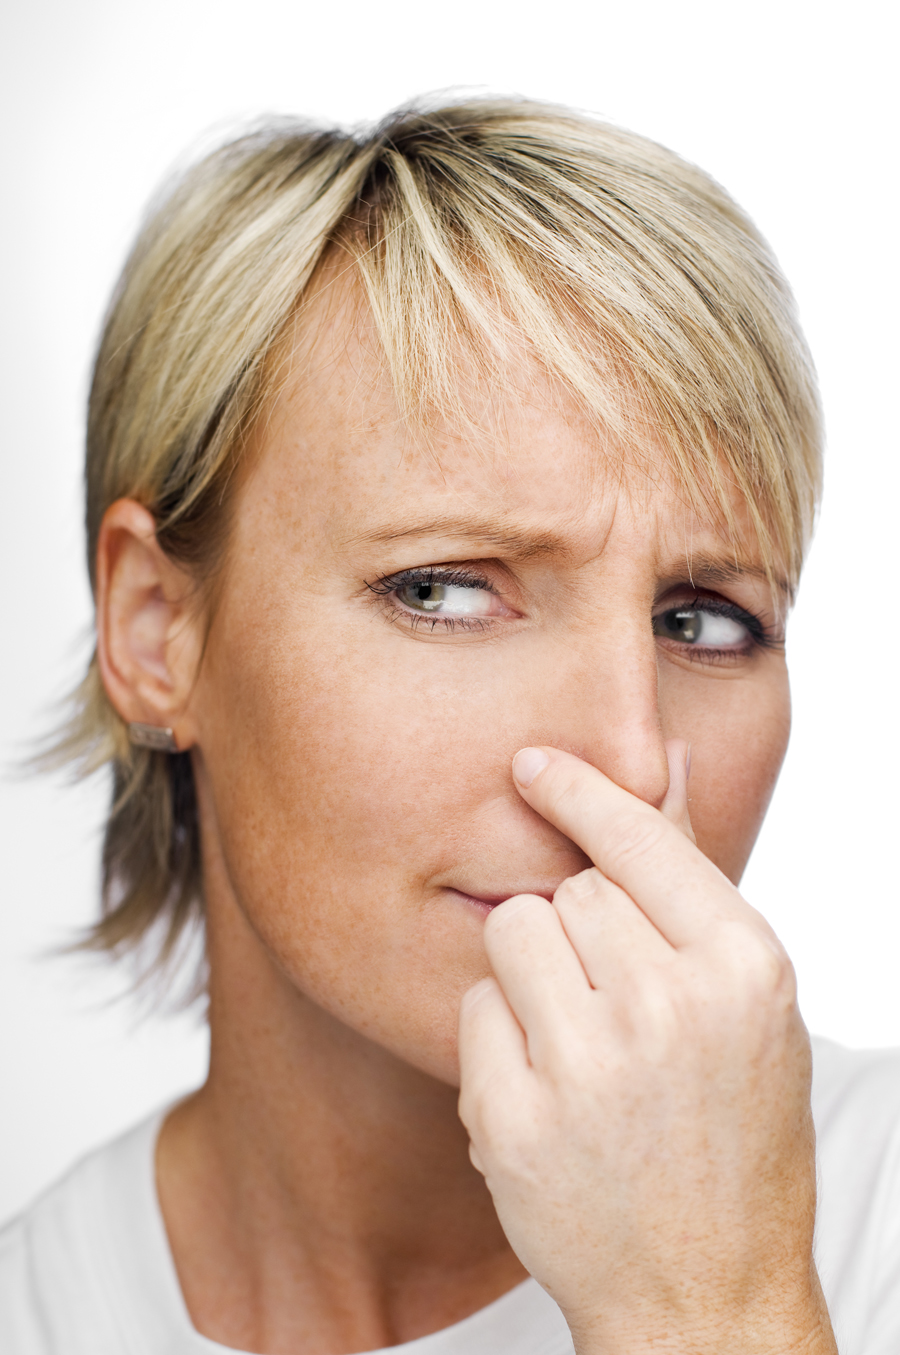 Image of woman holding her nose due to bad sewer gas smell